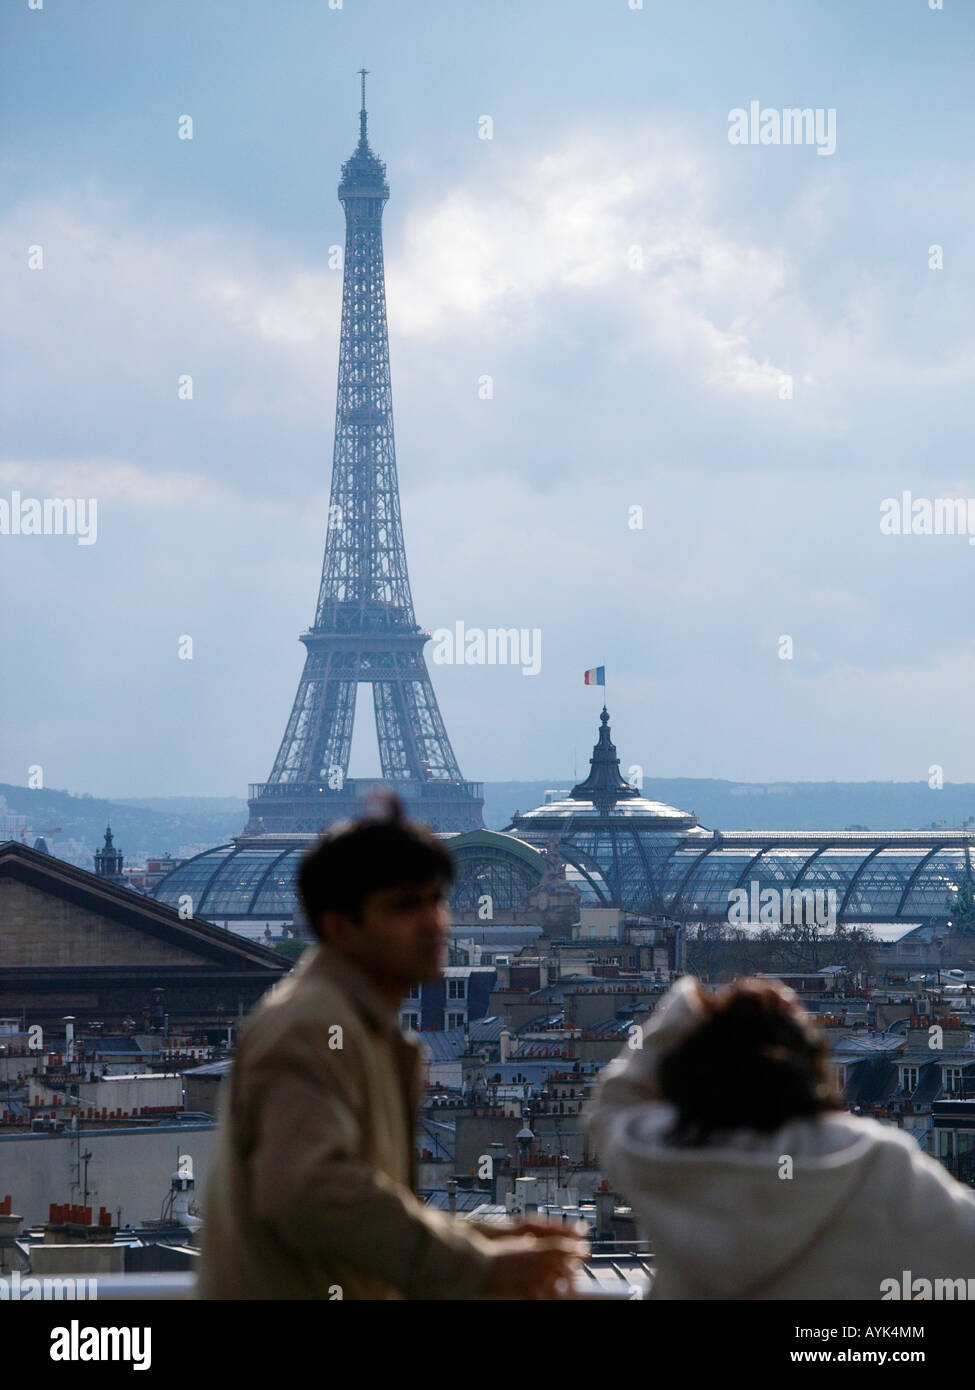 Eiffel tower Paris France with out of focus couple in the foreground - Stock Image